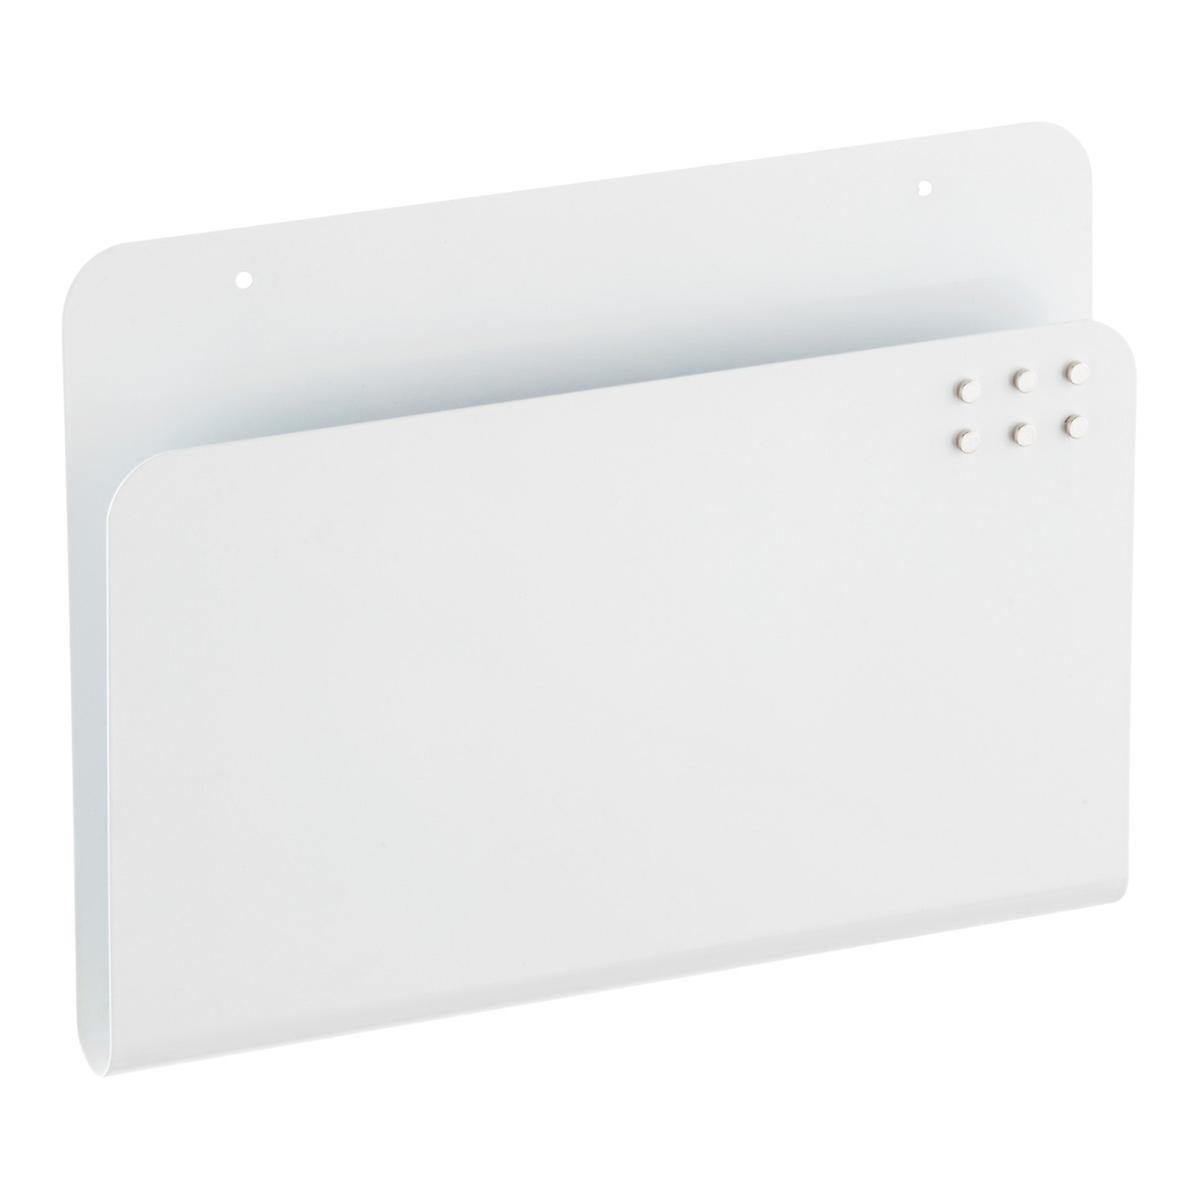 Magnetic Wall Pocket